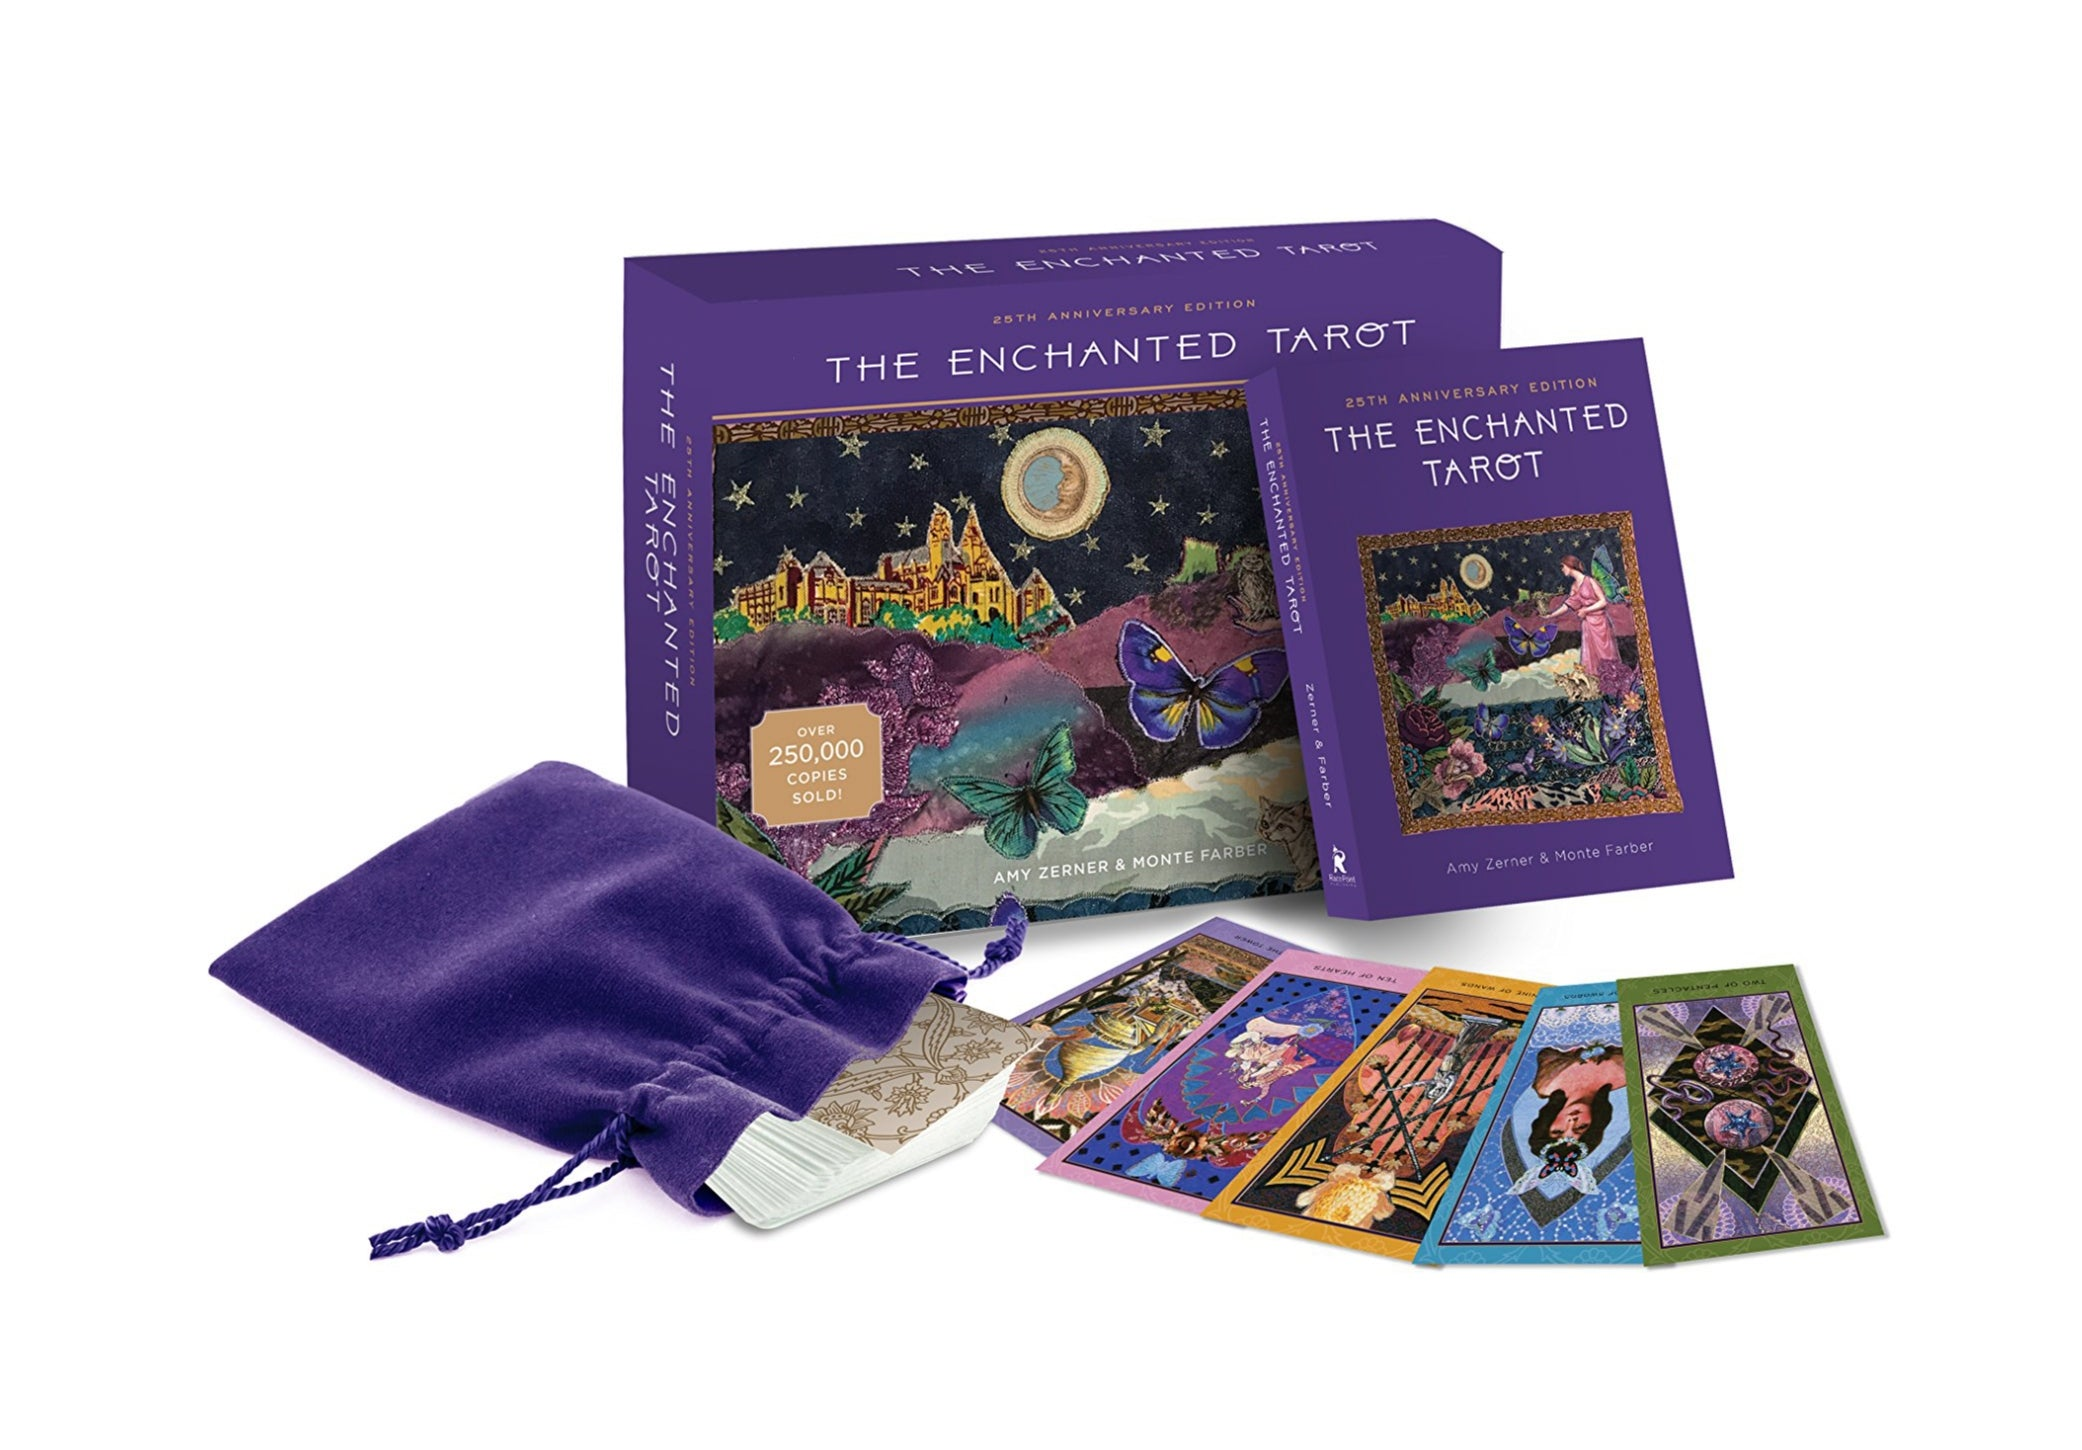 The Enchanted Tarot Deck & Book (Zerner & Farber)